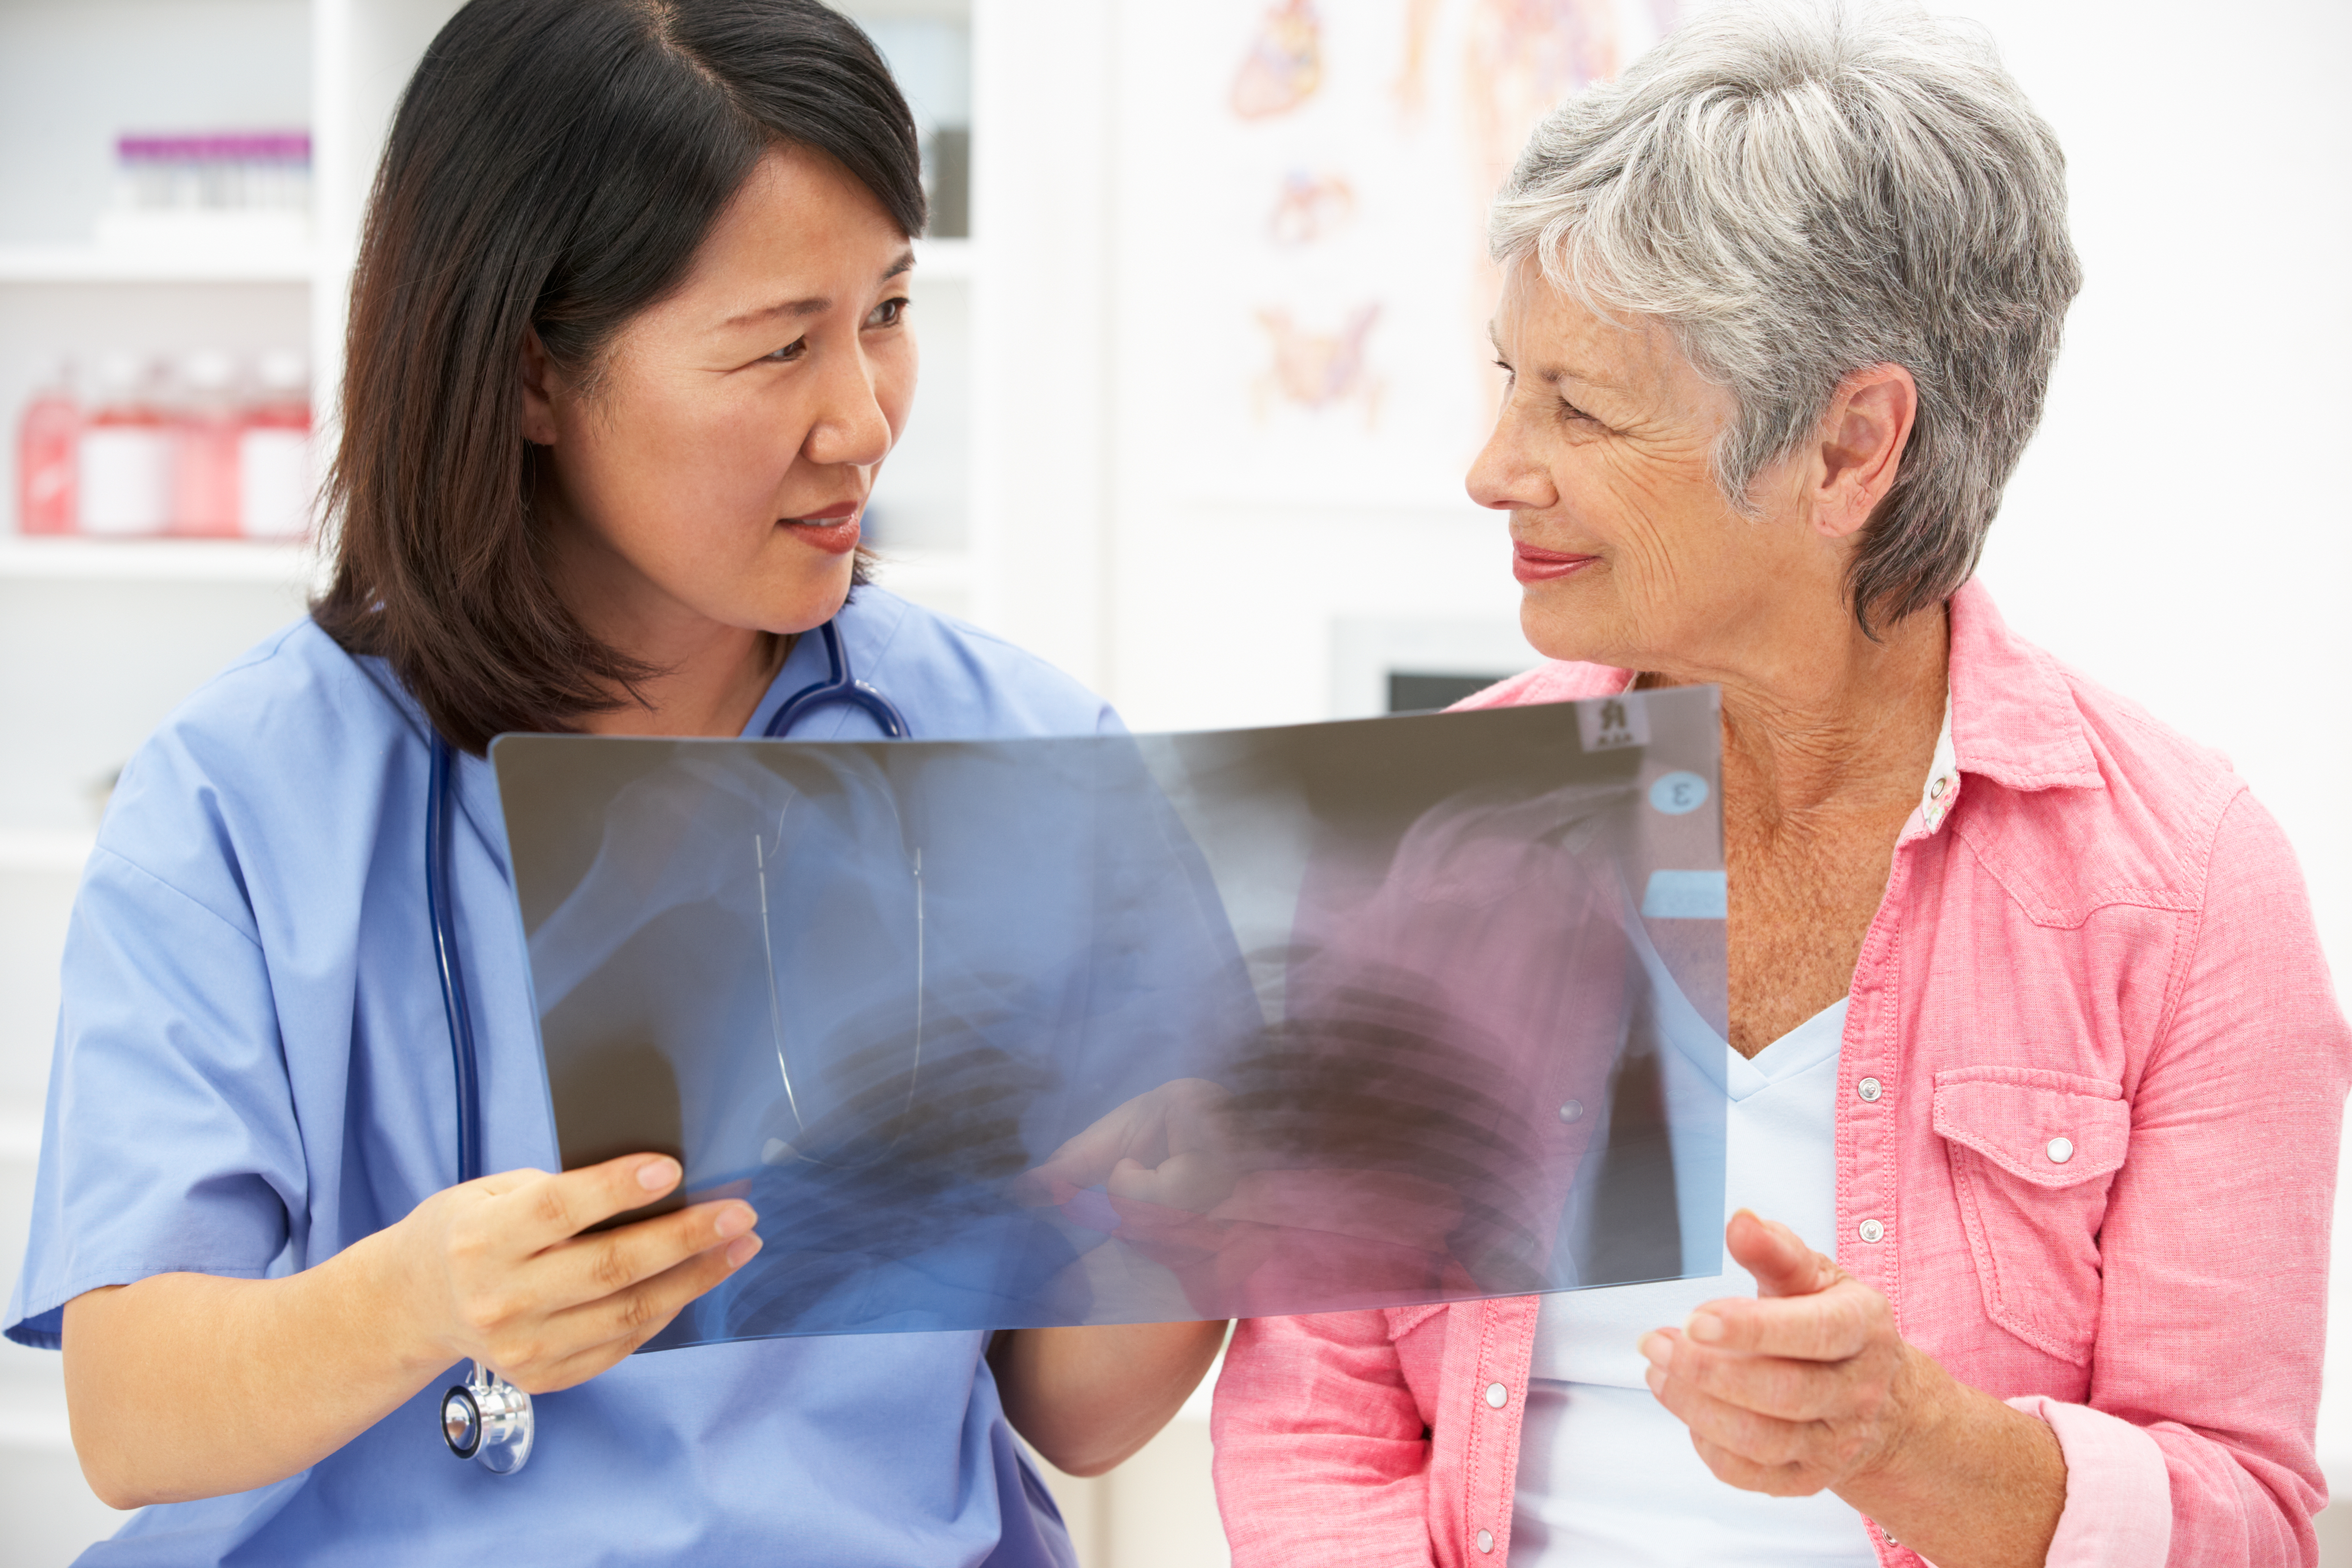 nurse looking at x-ray with senior woman